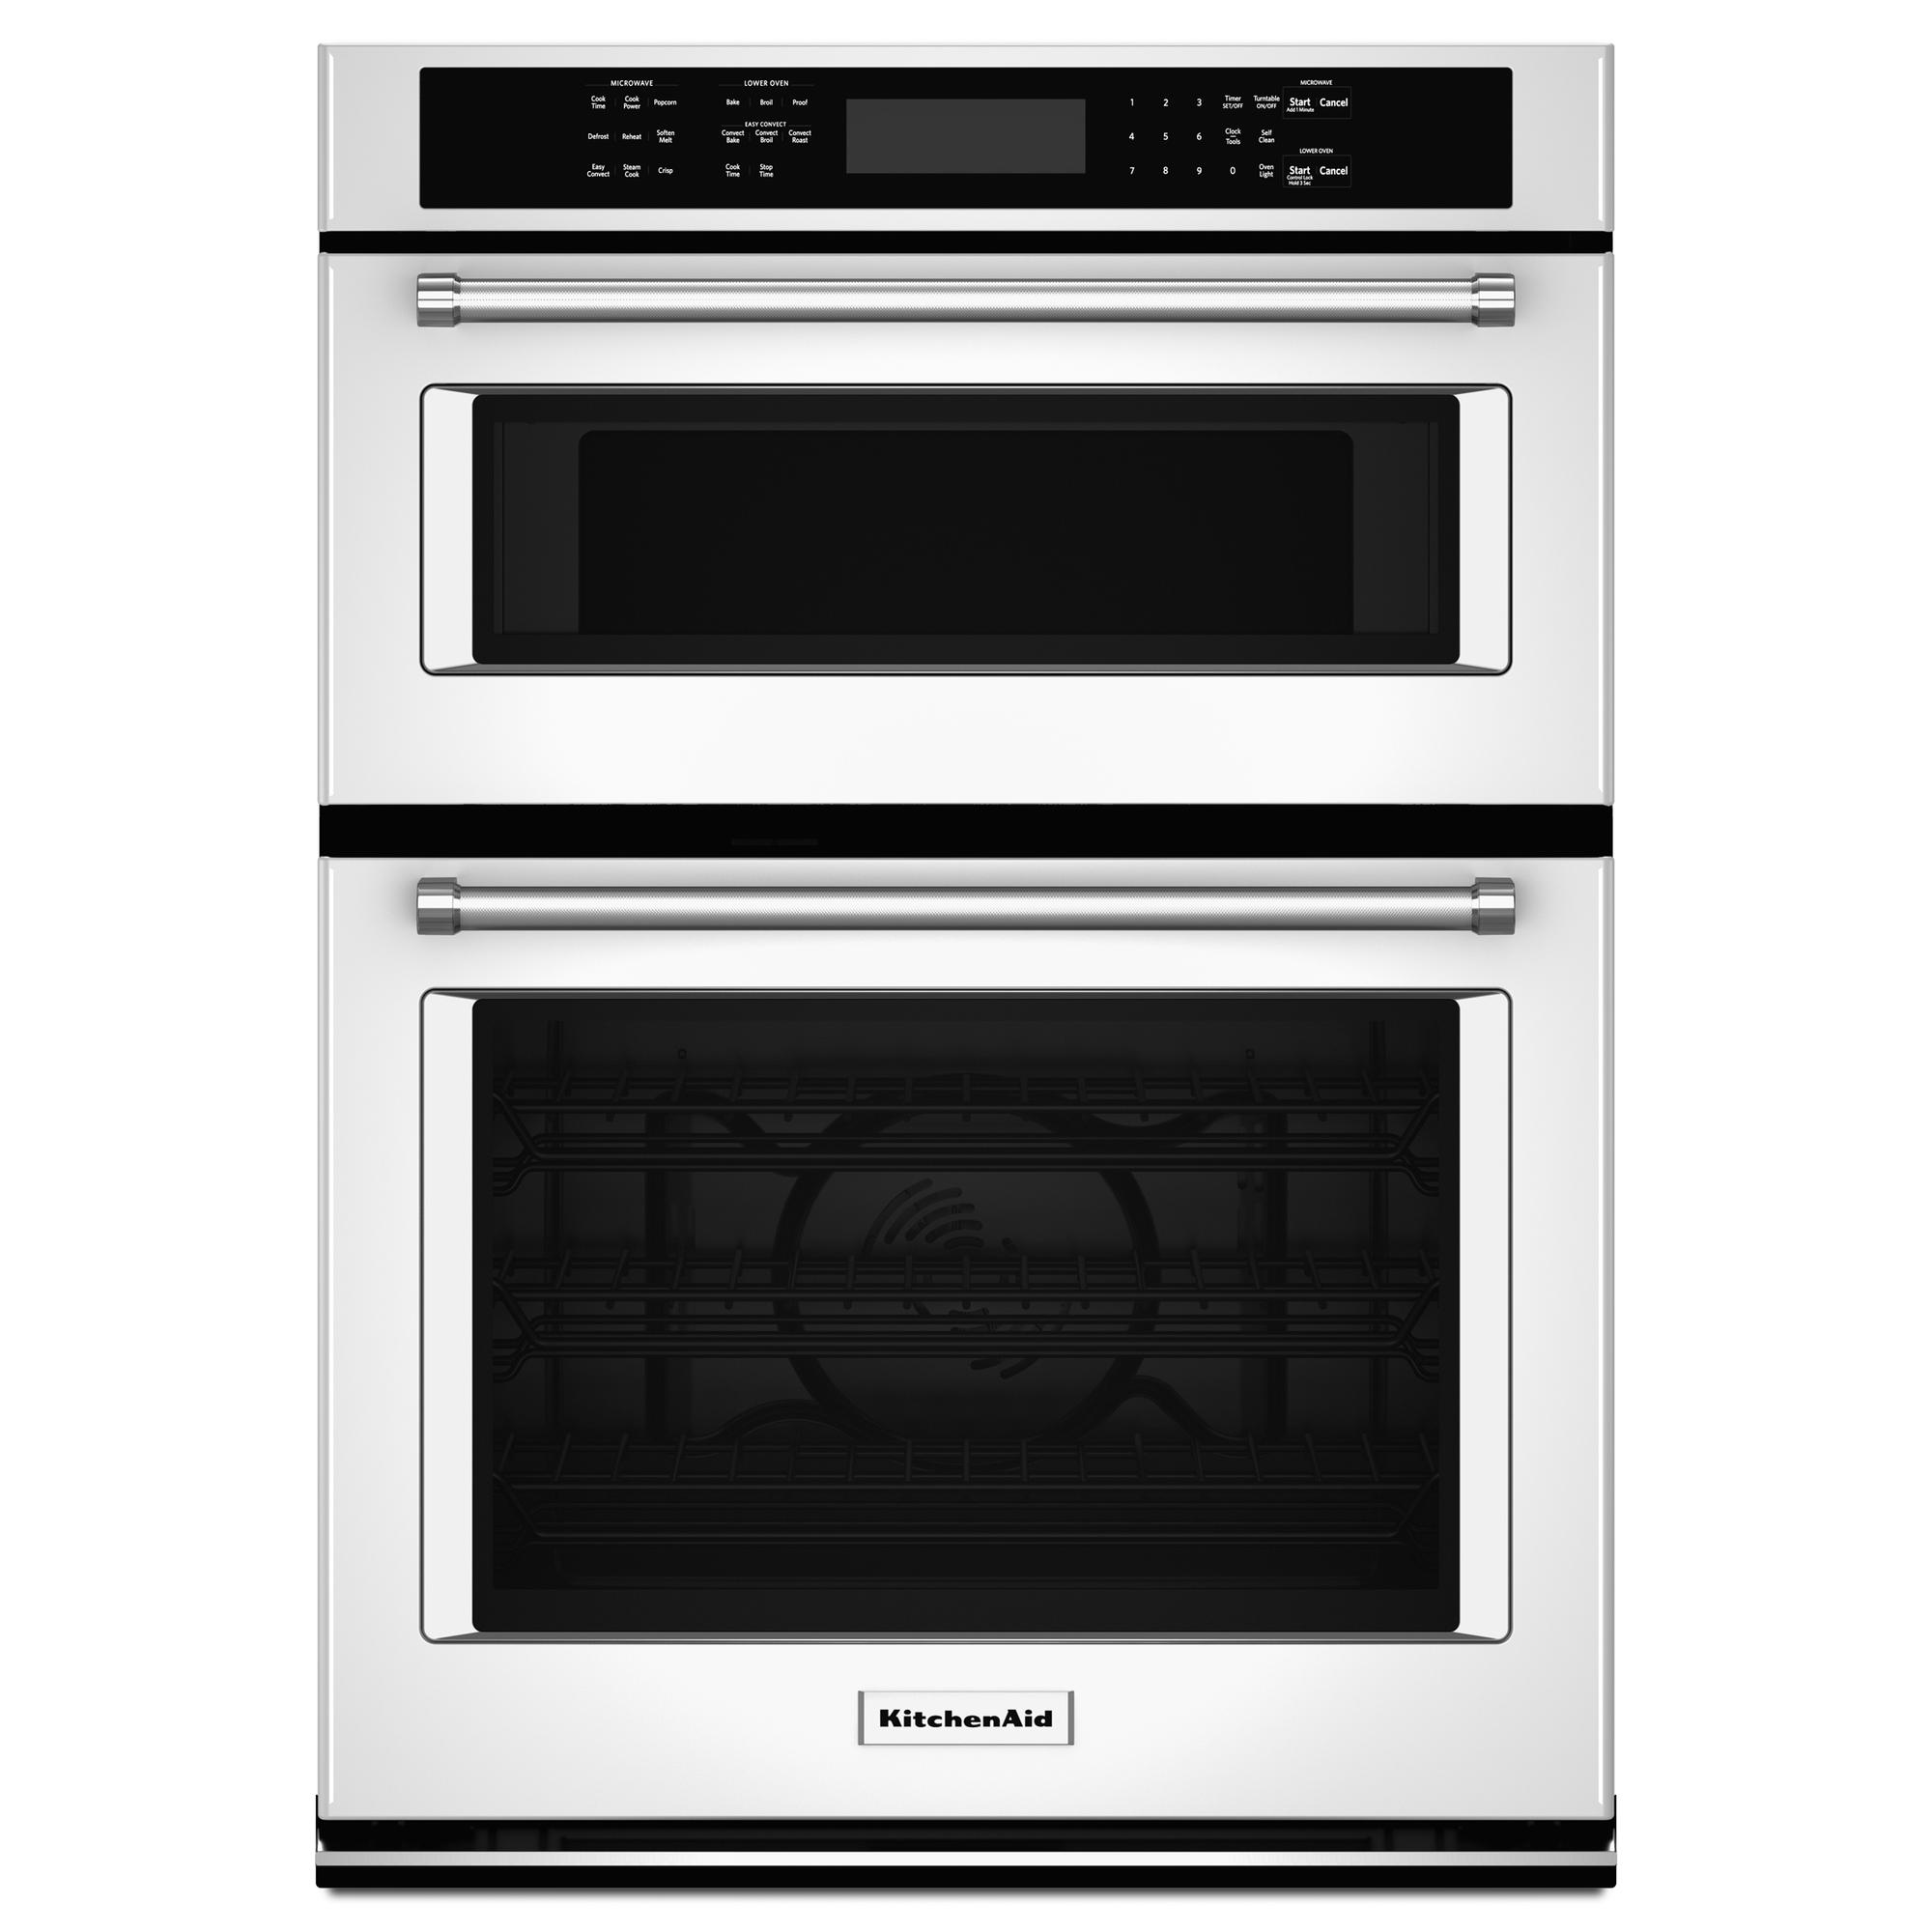 KOCE507EWH-27-Double-Wall-Oven-w-Even-Heat%E2%84%A2-True-Convection-White